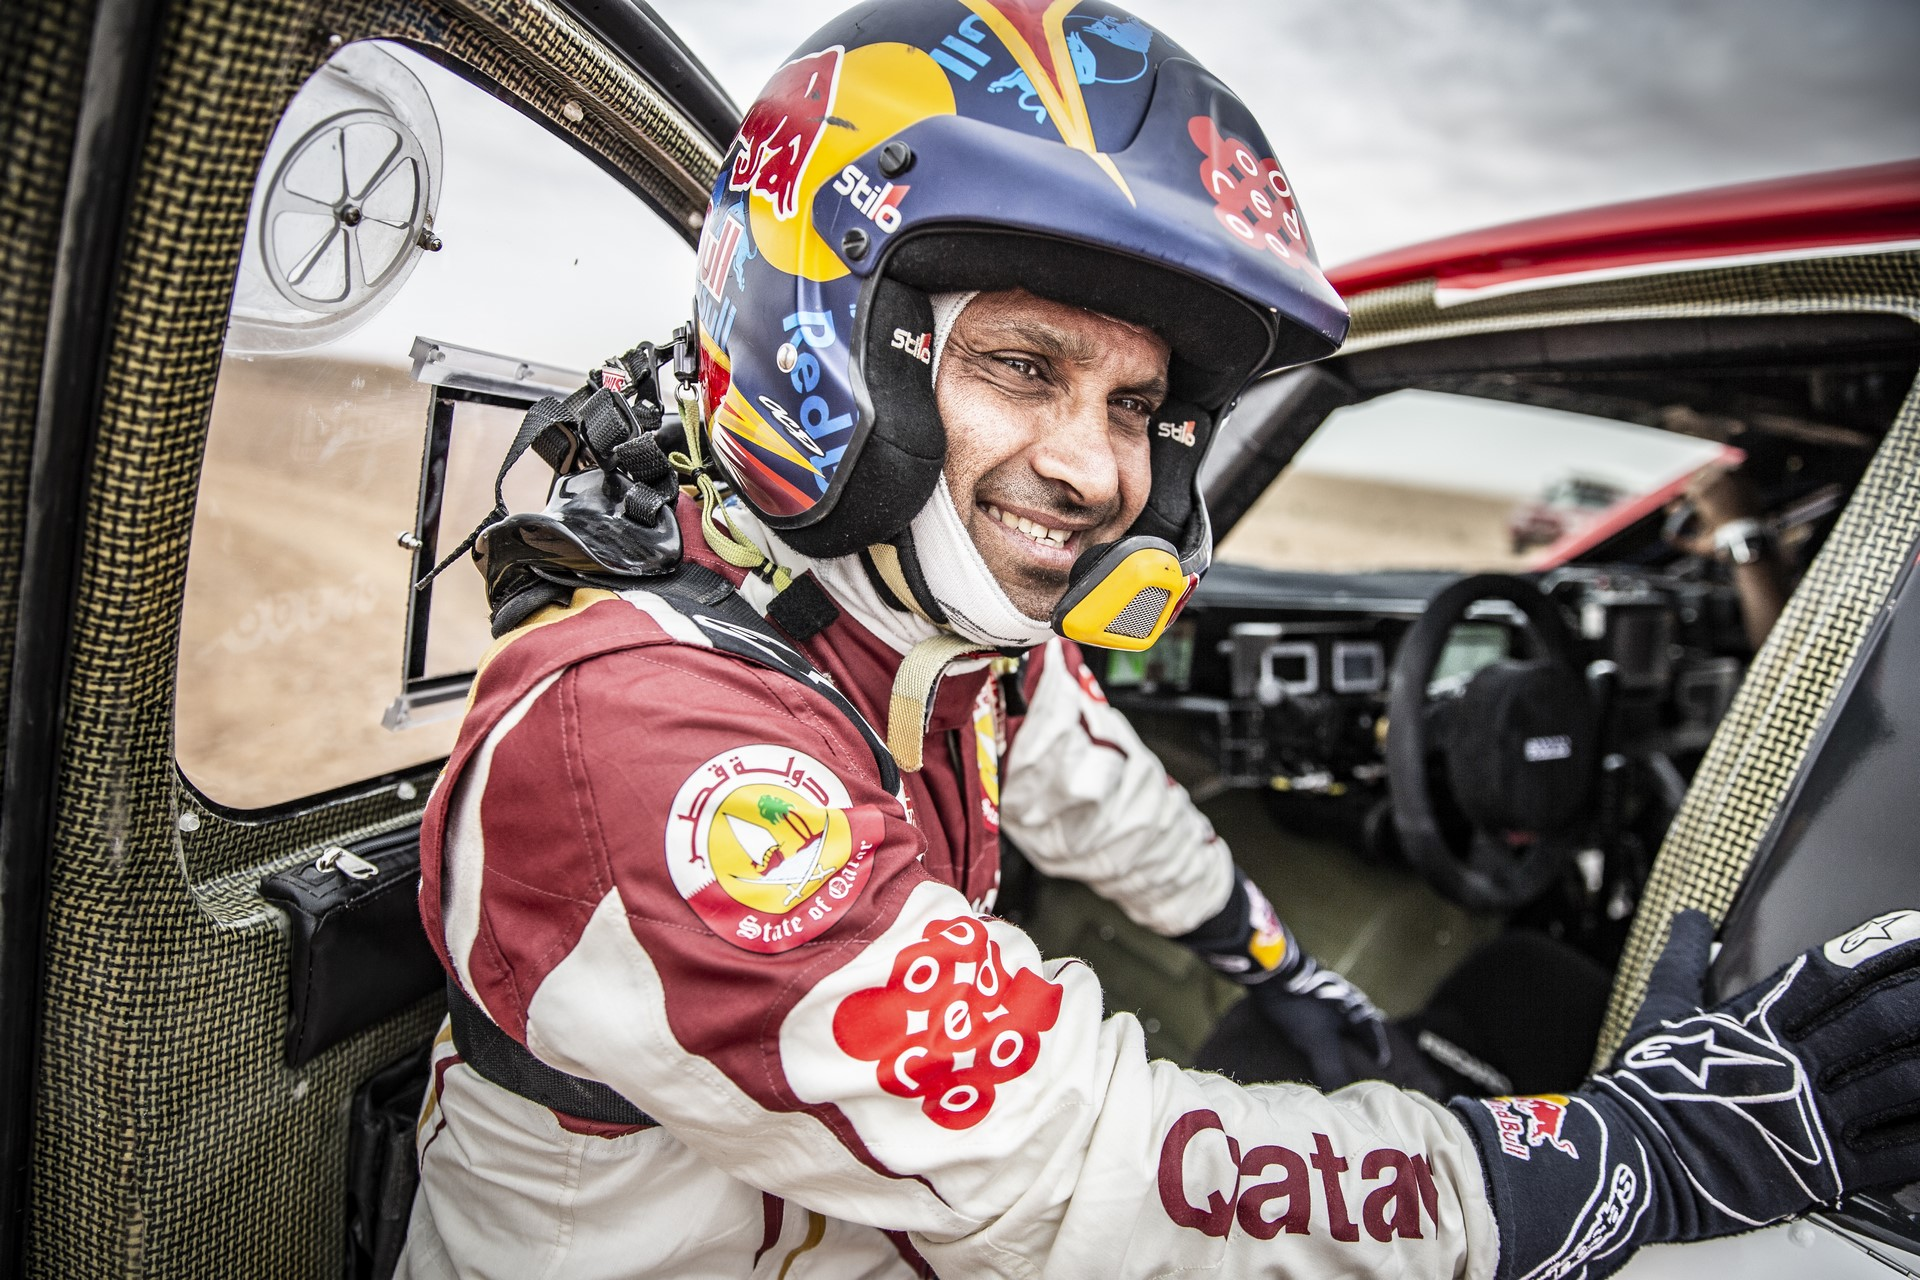 Nasser Al Attiyah at the 2nd stage of Rally Du Maroc in Erfoud, Morocco on October 06, 2018